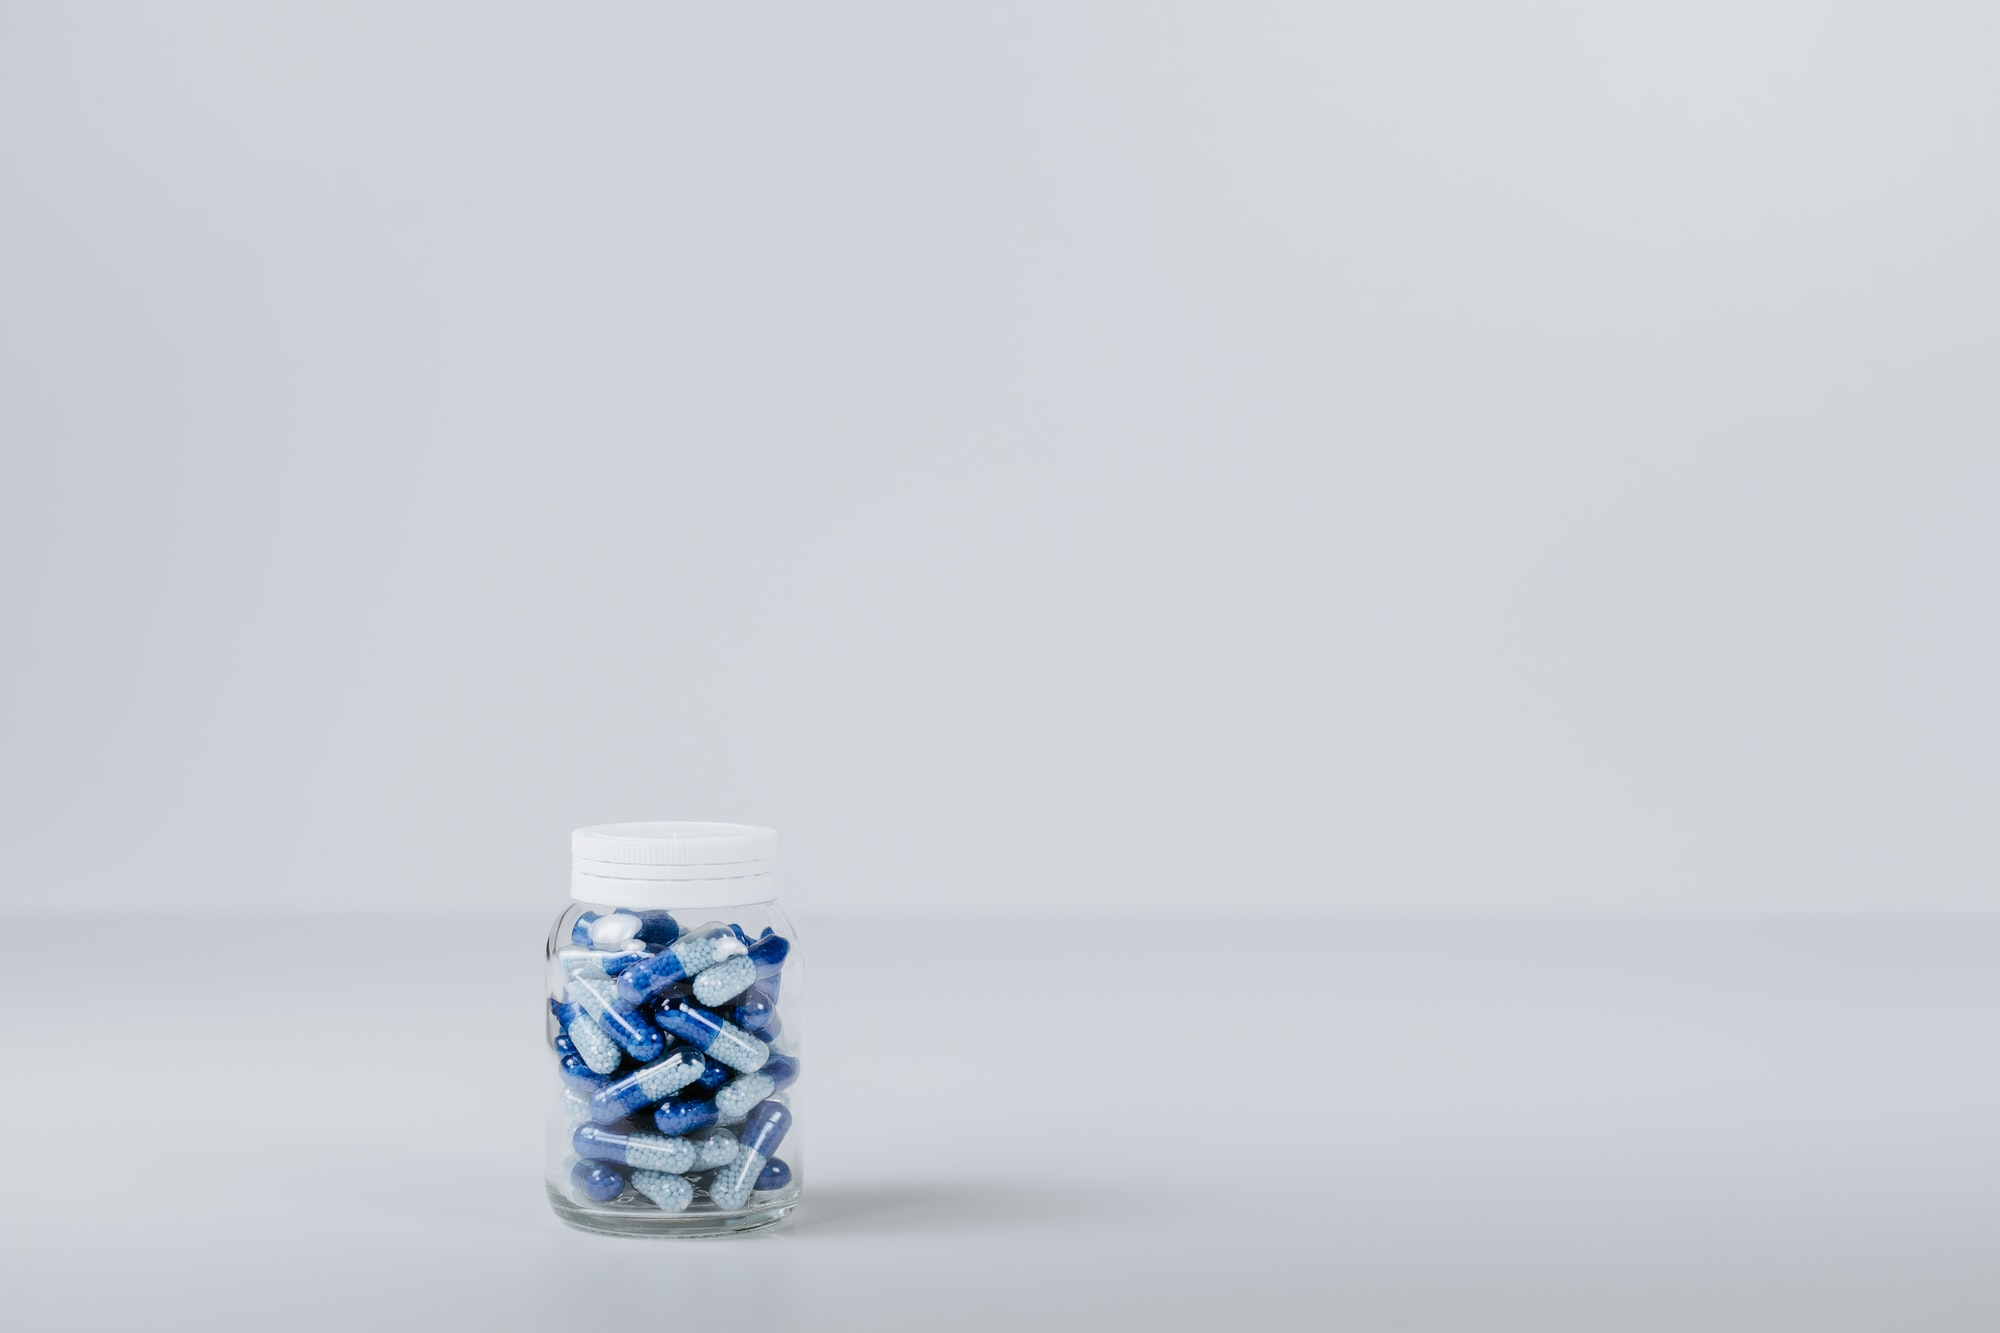 Lactobacillus reuteri, L casei and other probiotics come in pill form too by Paweł Czerwiński for Unsplash.